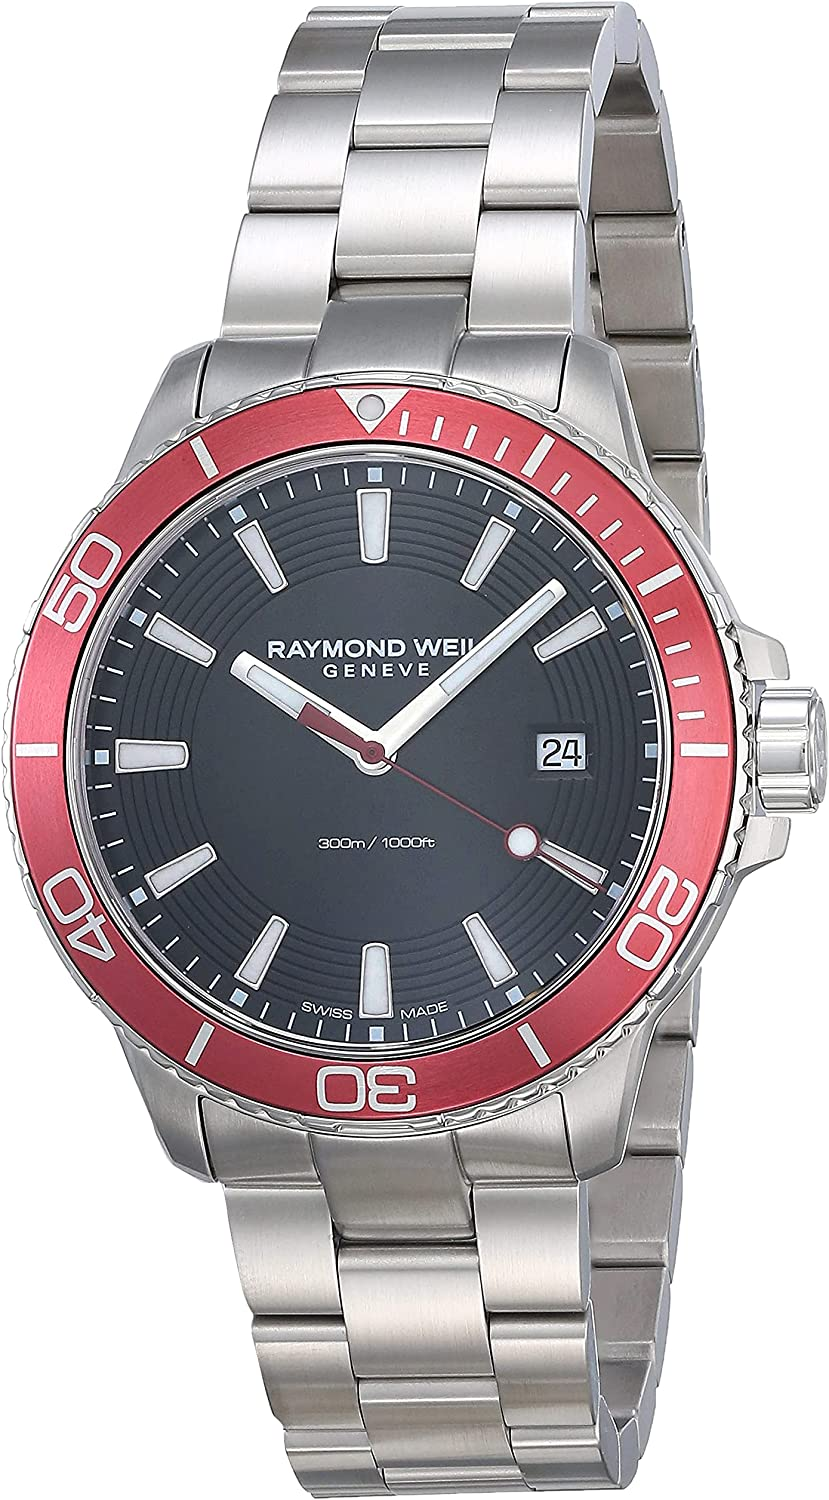 Raymond Weil Men's Tango 301 Stainless with Steel S Free shipping anywhere in Popular brand the nation Watch Quartz